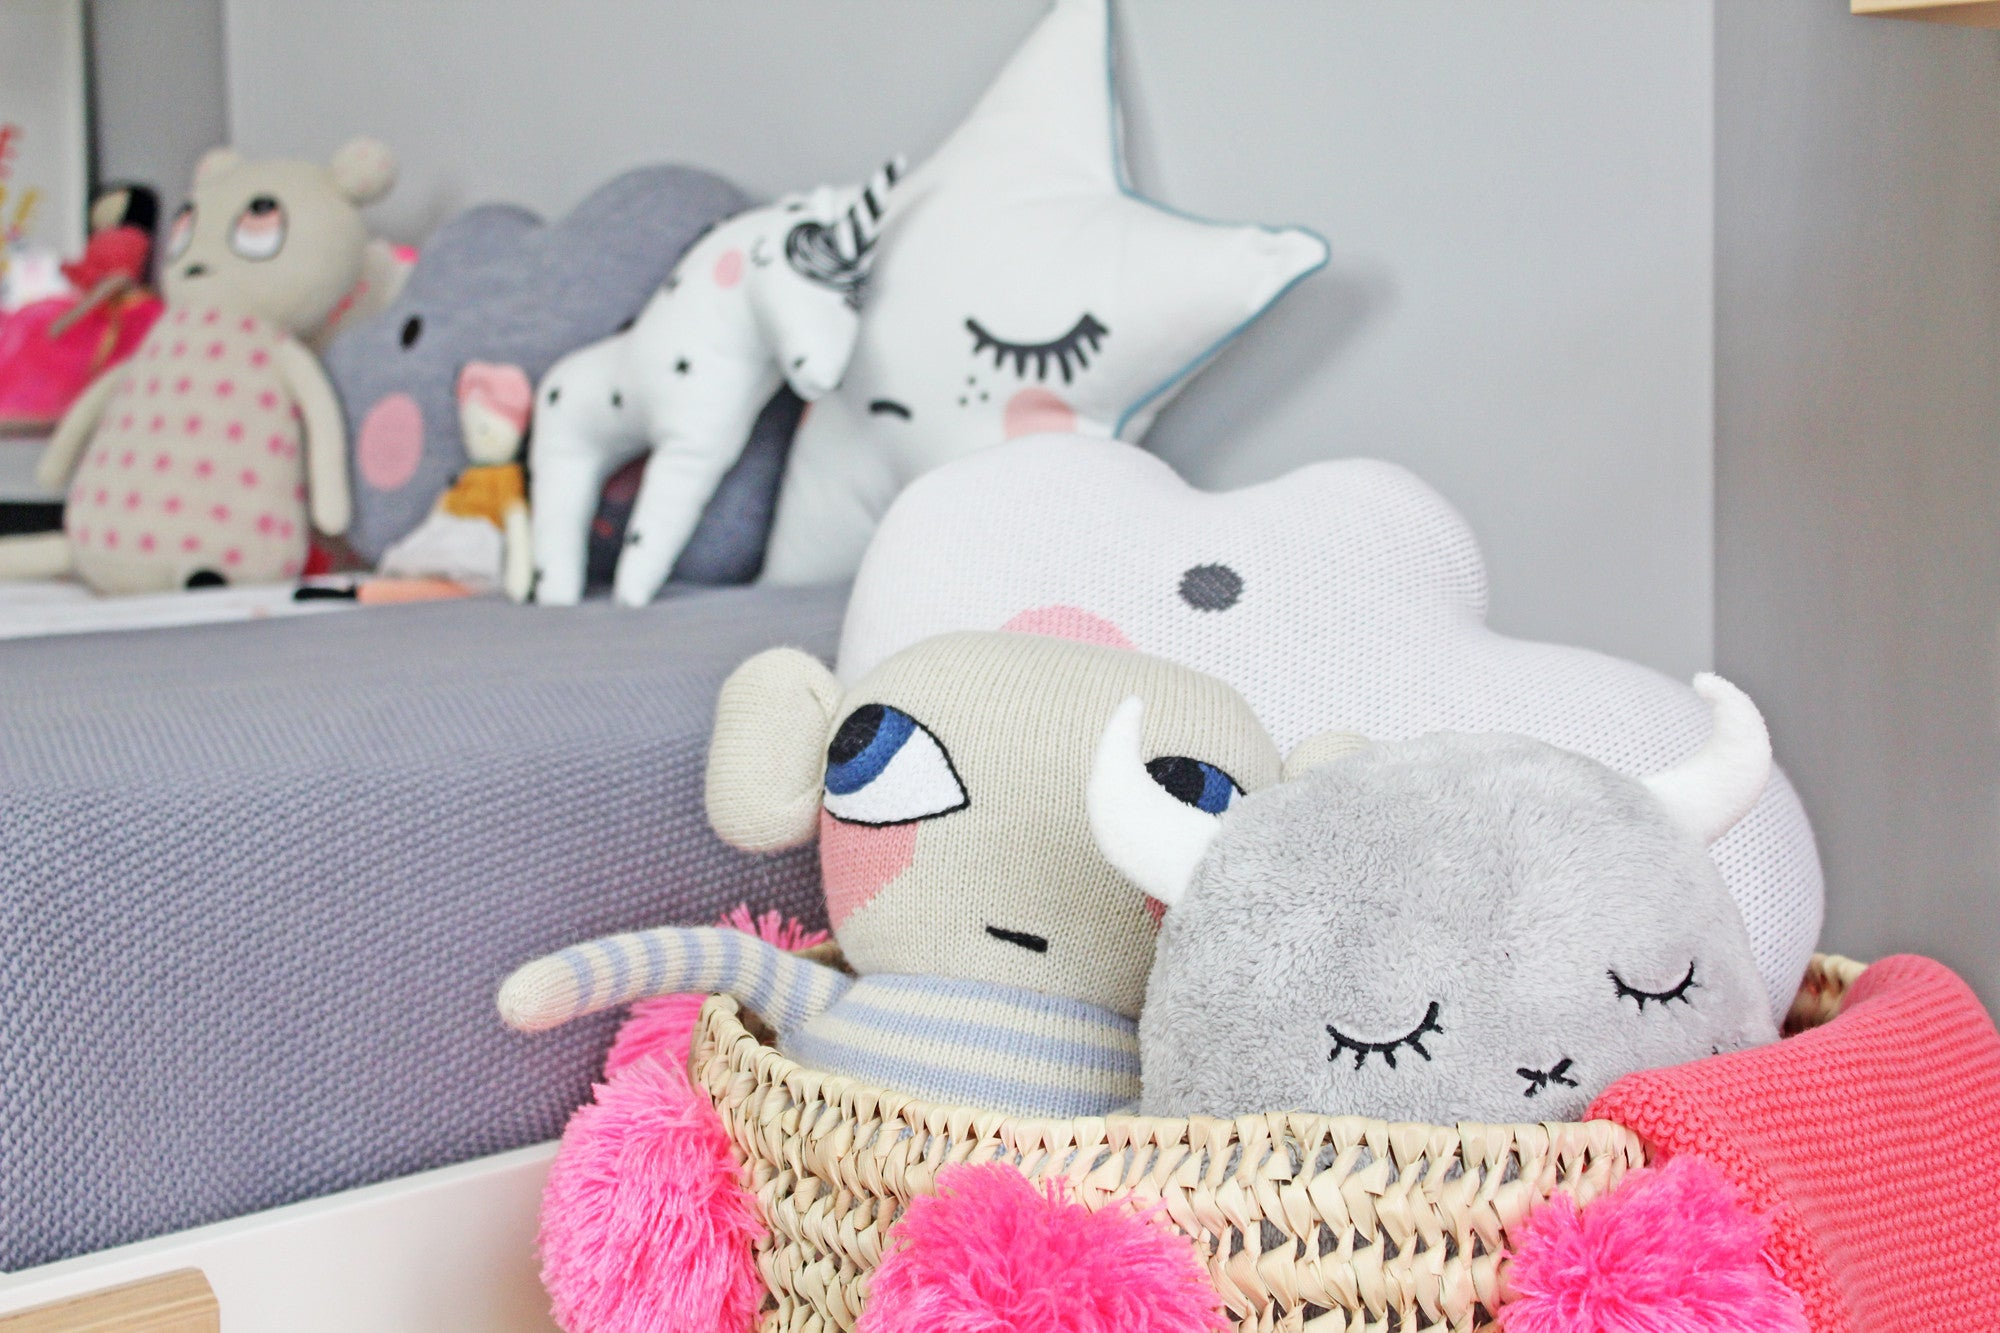 Toys and accessories, children's room decor available at Bobby Rabbit.